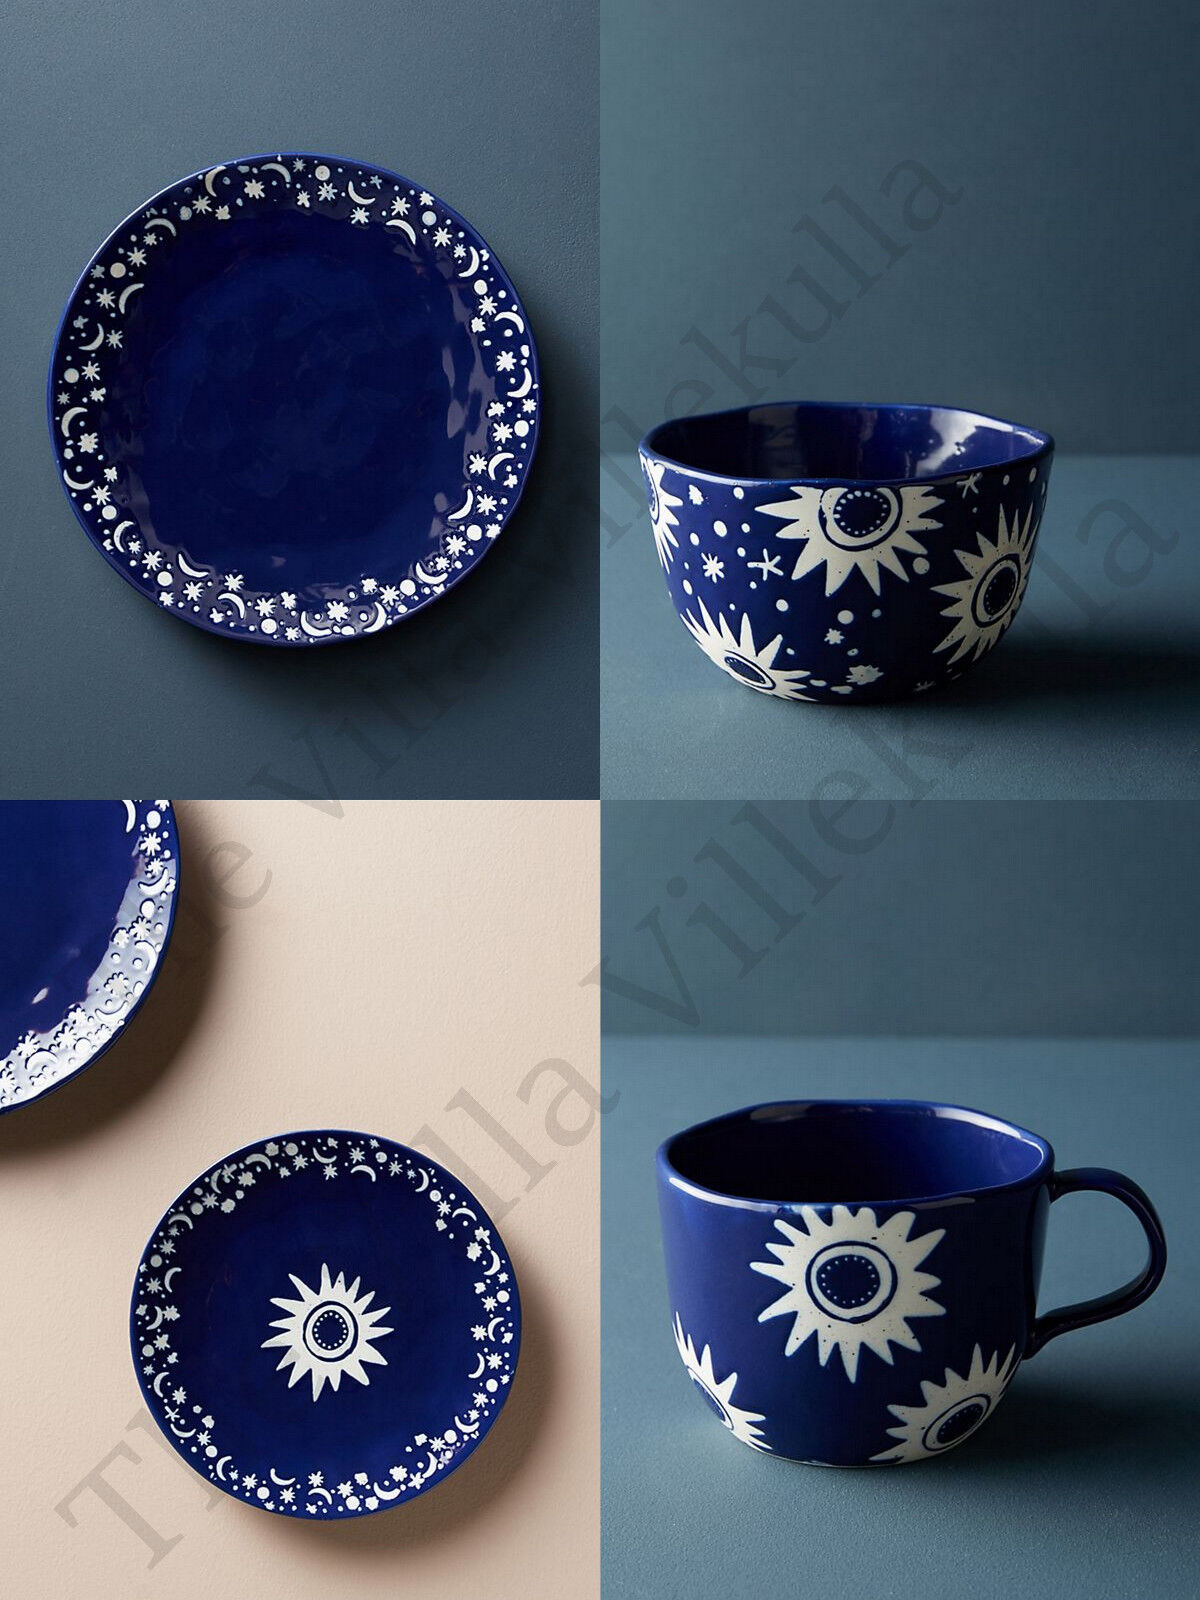 New Anthropologie  Solstice    Full 8 Piece Dinner Set Beautiful Celestial Design c991ef